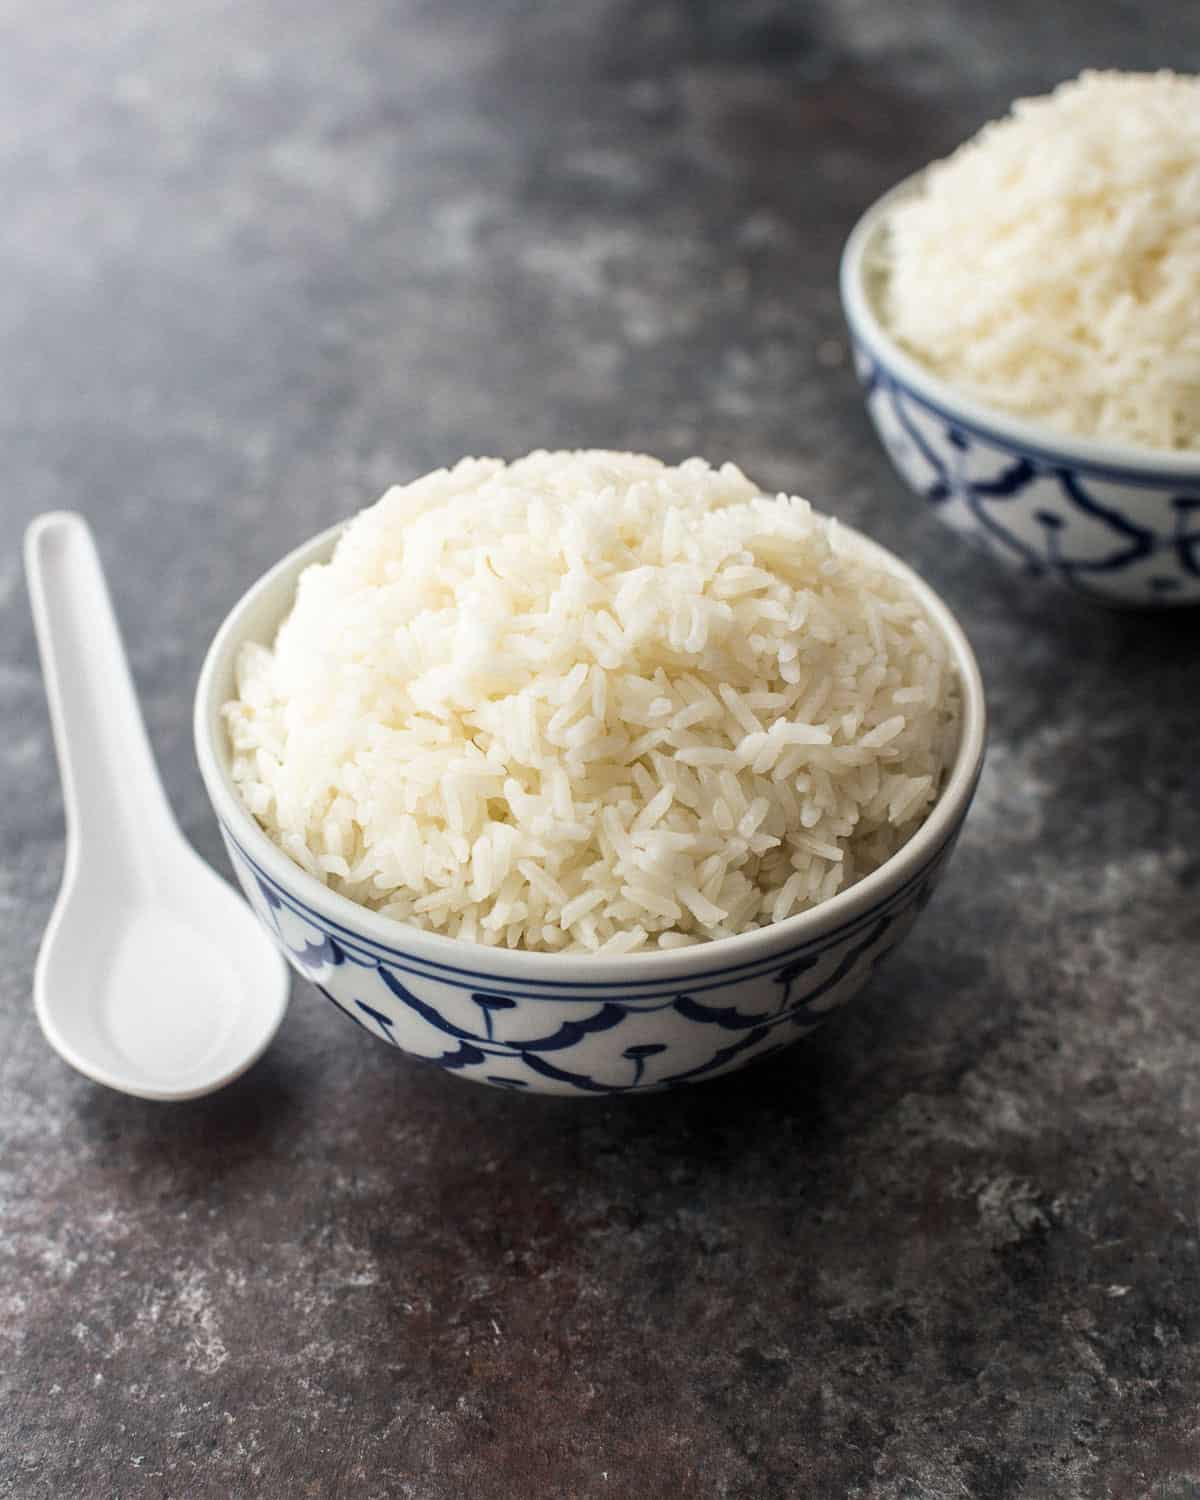 a bowl of jasmine rice on a grey countertop